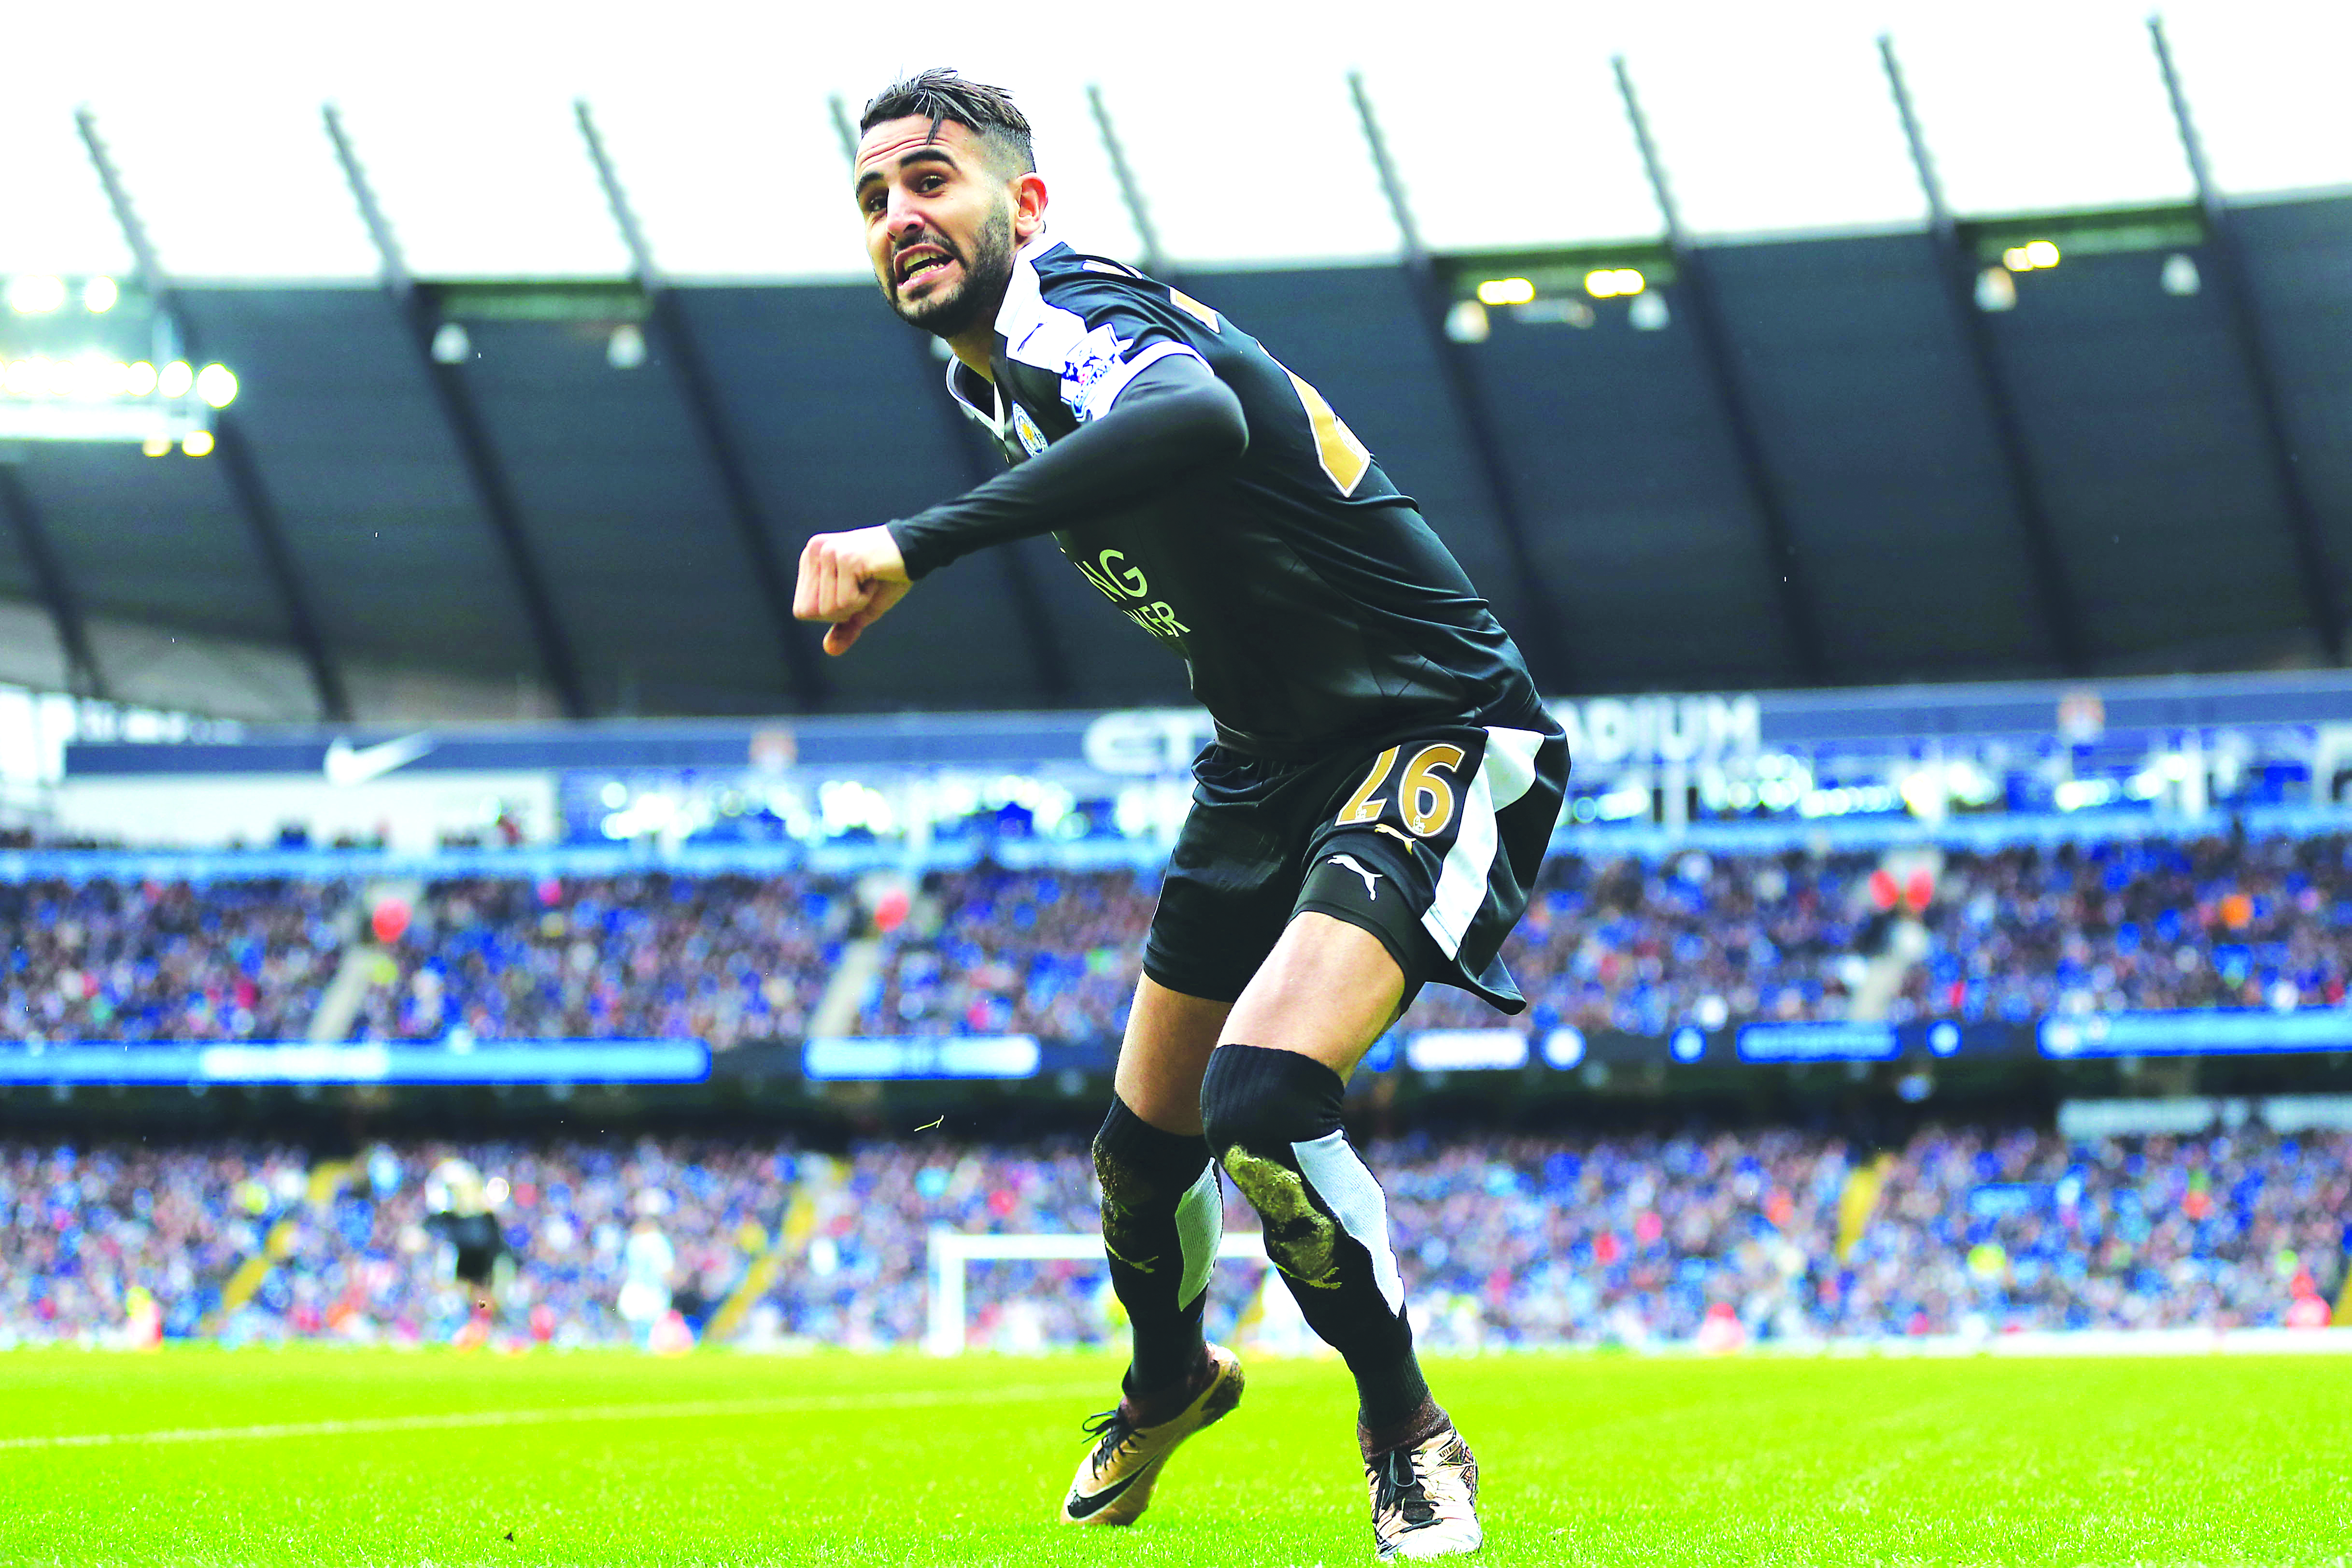 Leicester City's Riyad Mahrez celebrates scoring his side's second goal of the game during the Barclays Premier League match at the Etihad Stadium, Manchester.